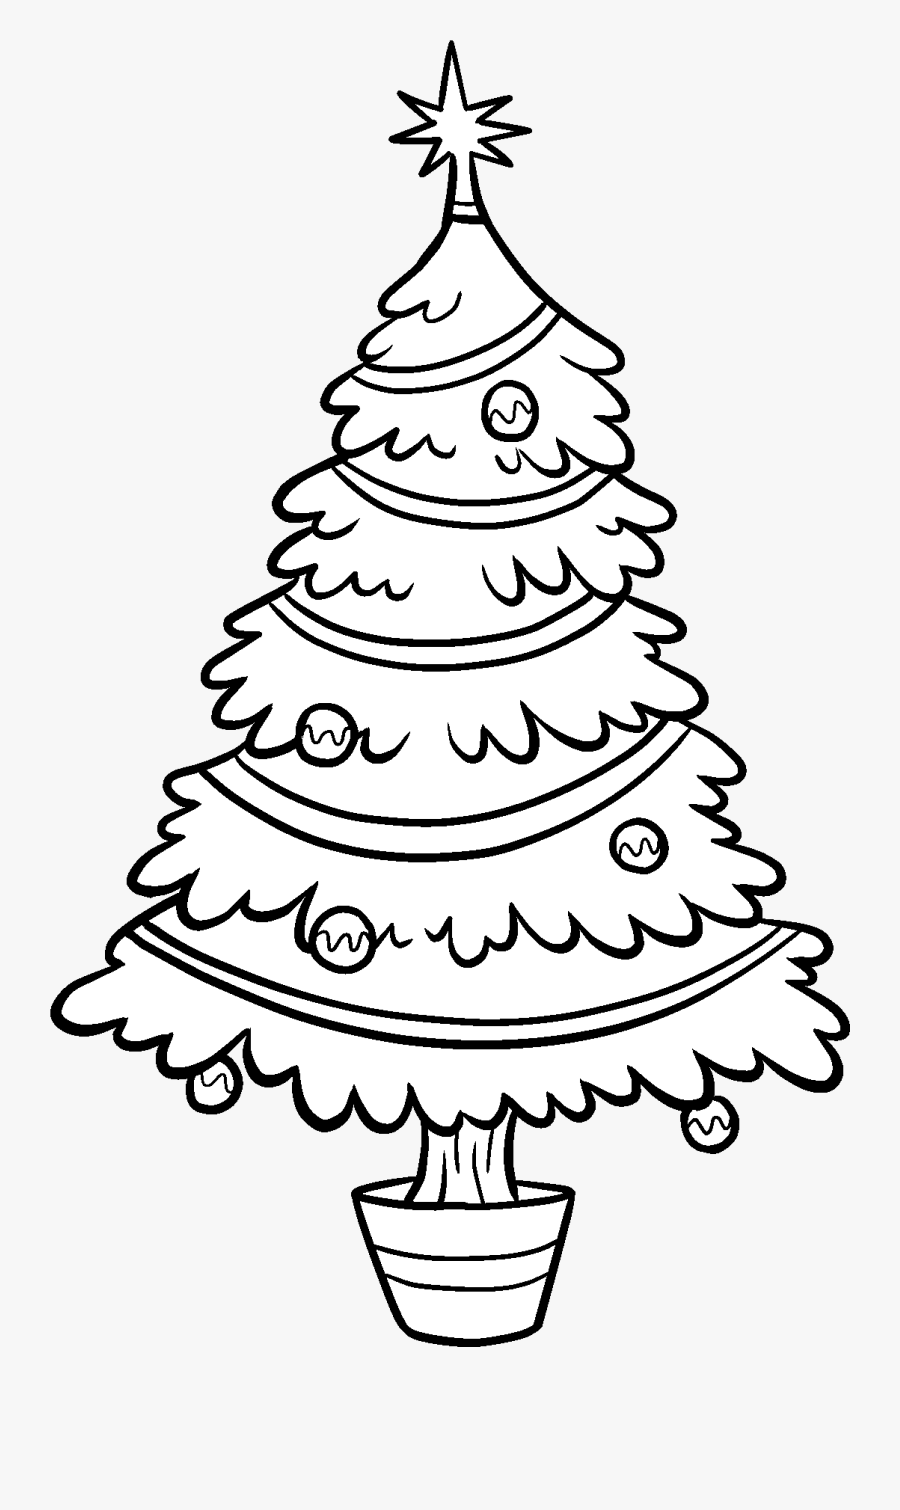 coloring christmas tree black and white best christmas tree clipart black and white 14646 coloring white black christmas and tree